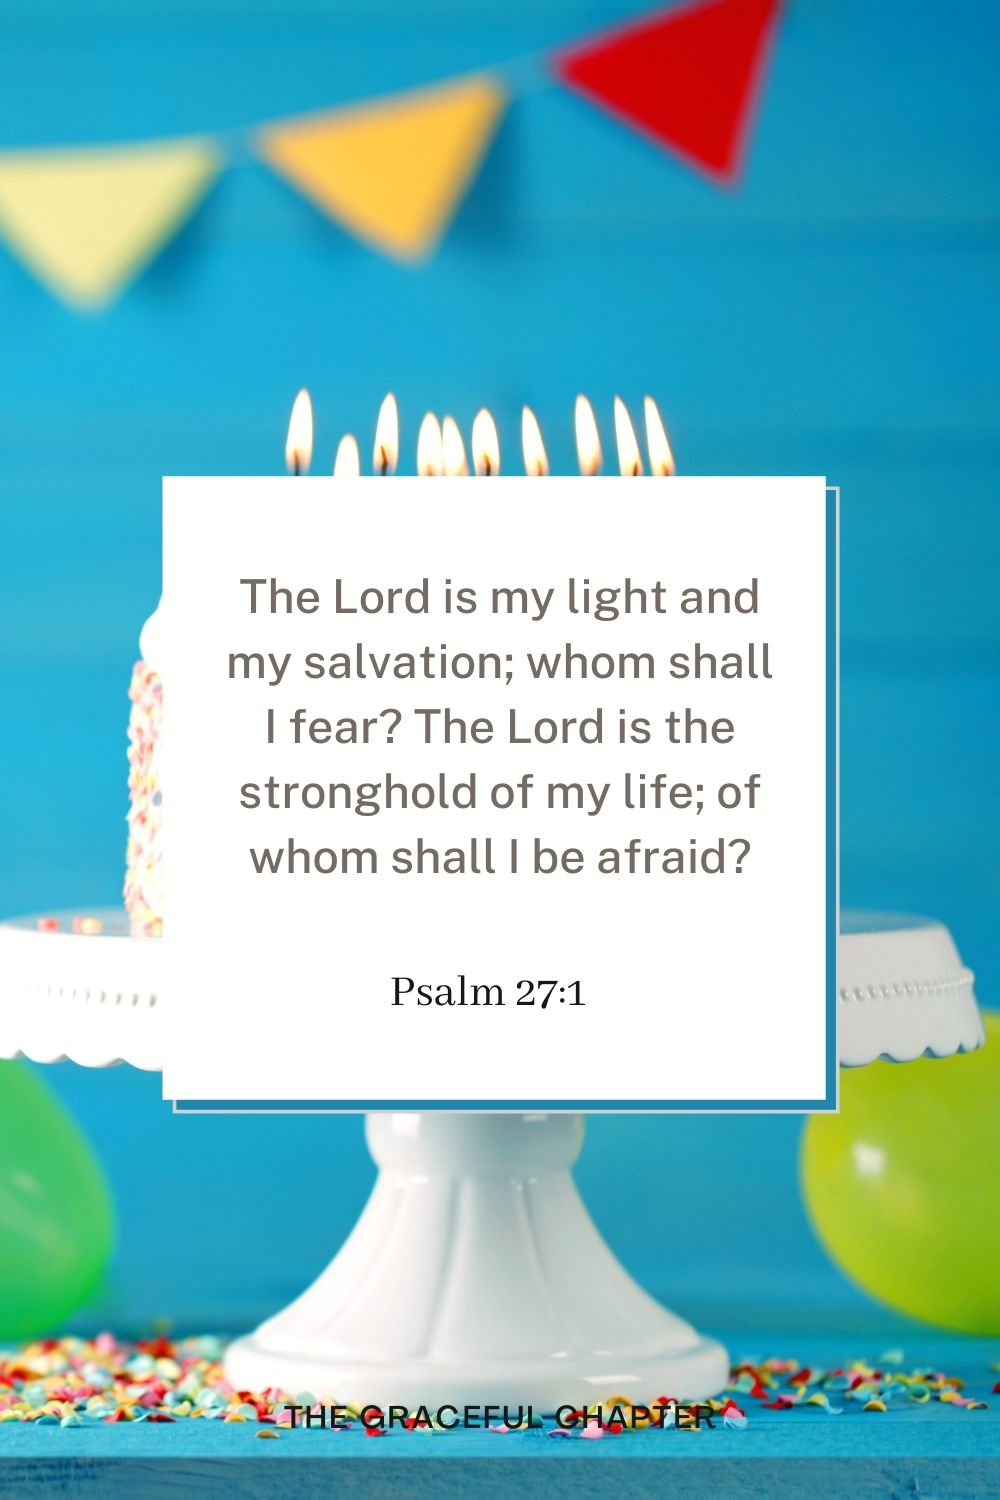 The Lord is my light and my salvation; whom shall I fear? The Lord is the stronghold of my life; of whom shall I be afraid? Psalm 27:1